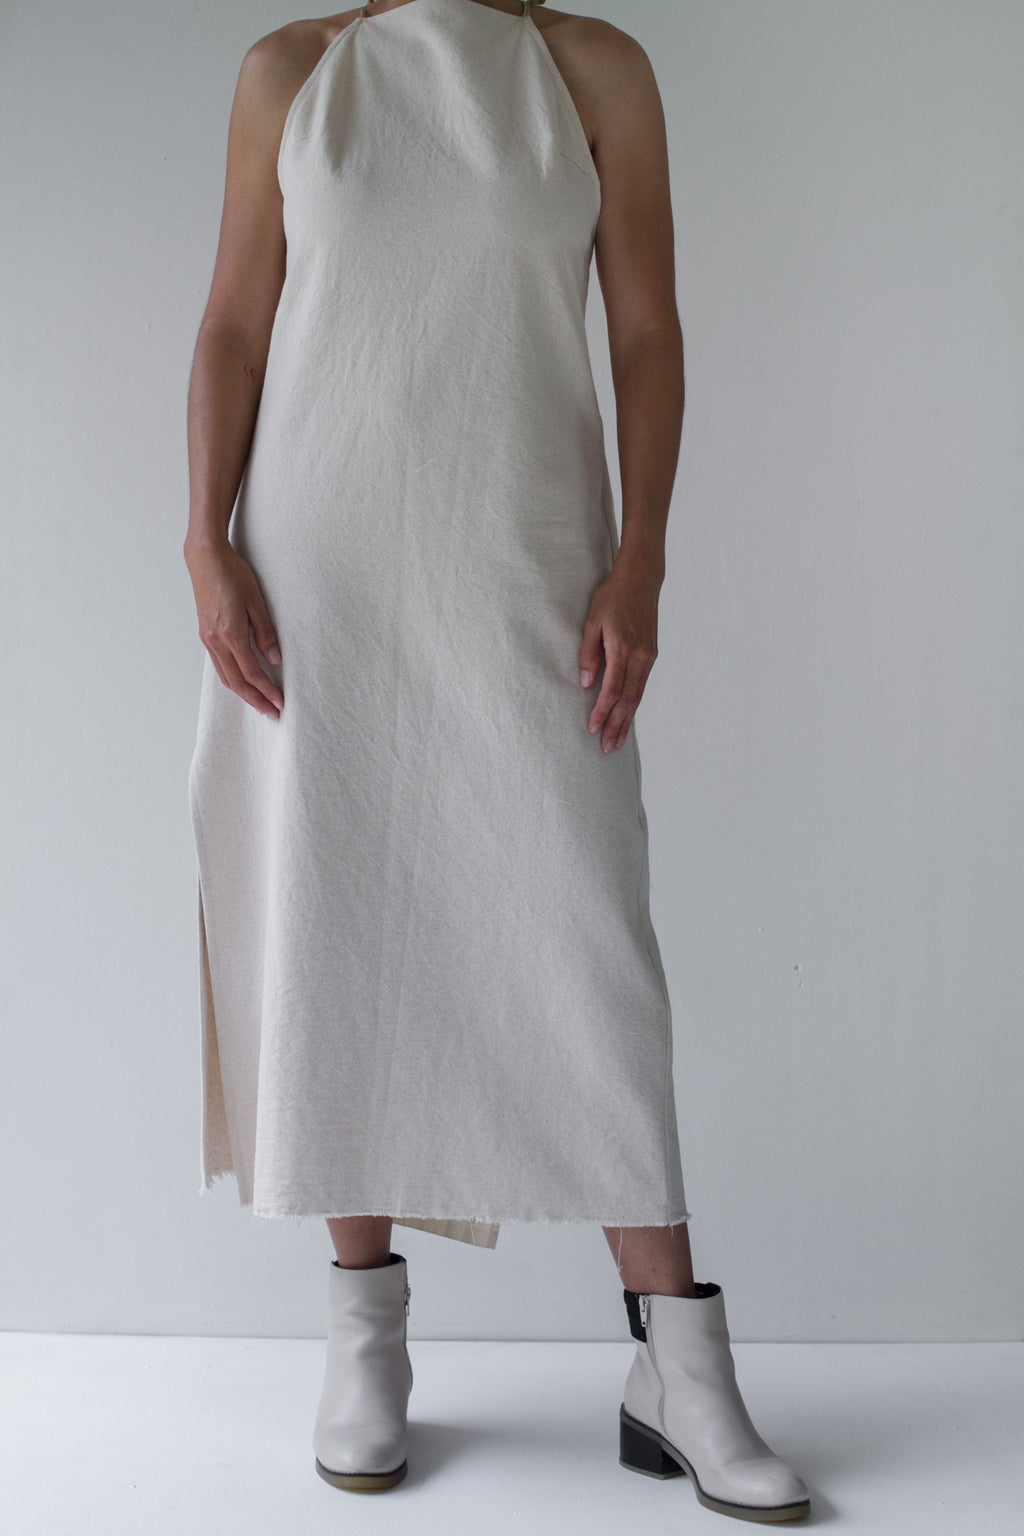 Caaori Dress-Obra Gris-Zero-Waste-Design-Costa-Rica